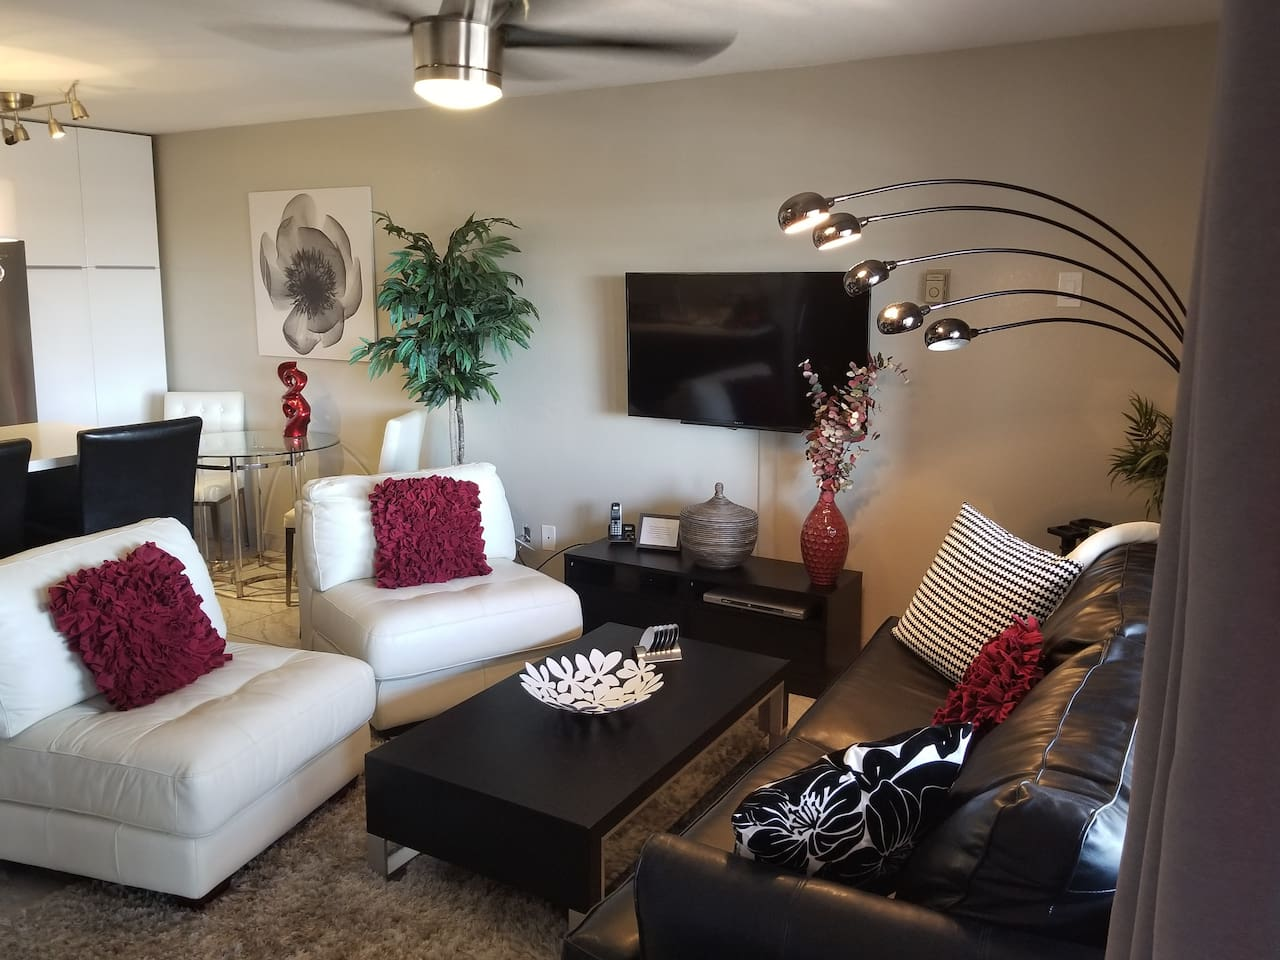 Sitting entertainment area/Living Room & Ceiling Fan